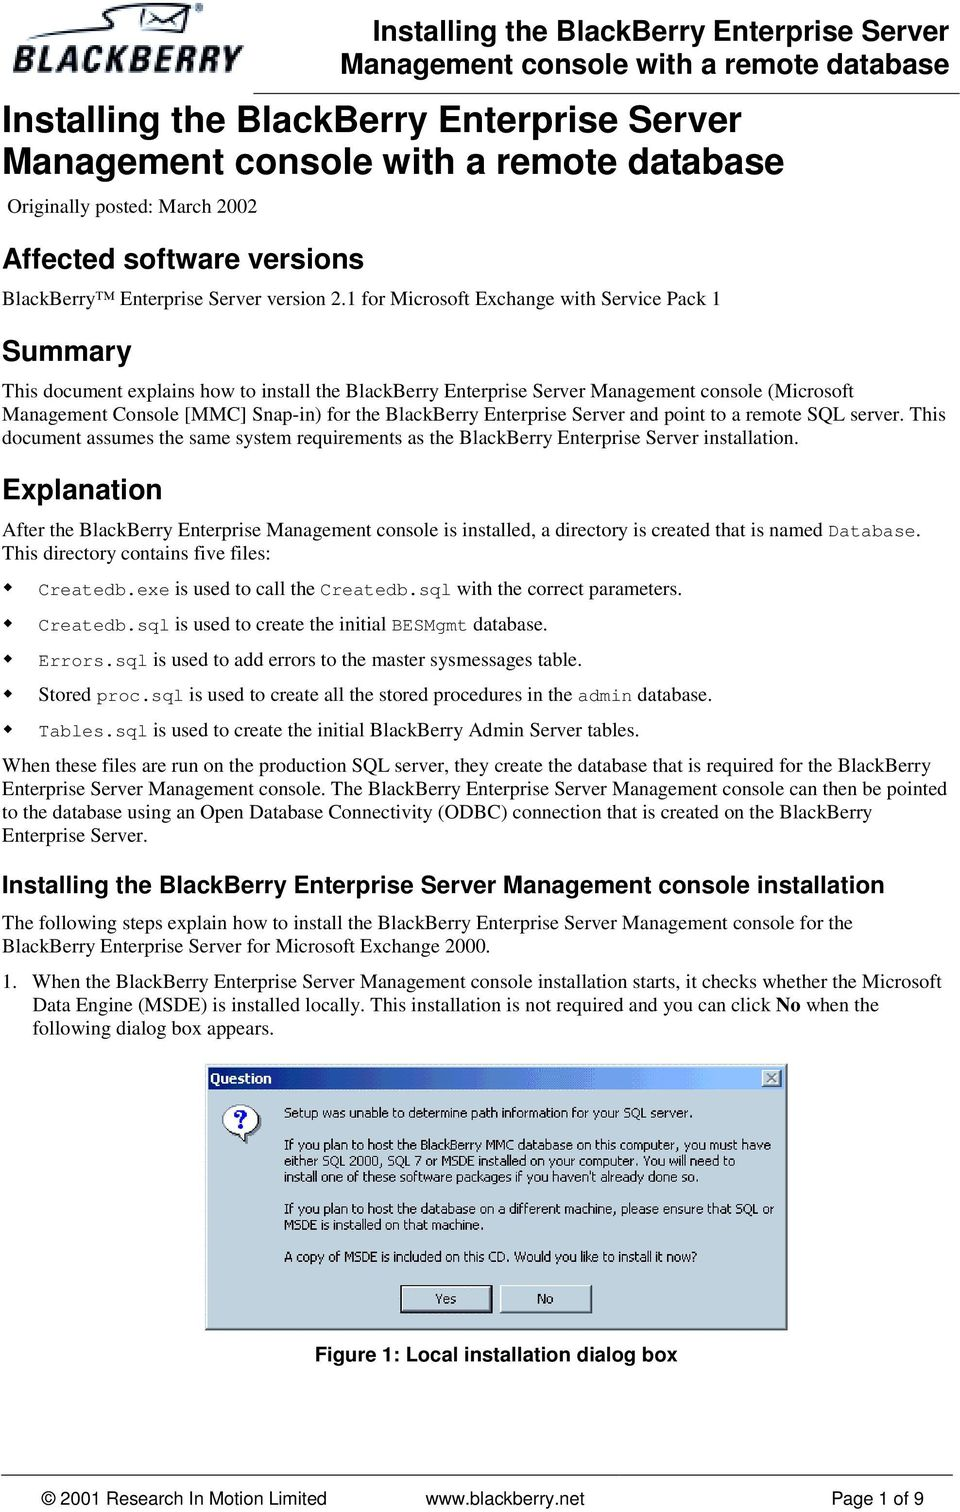 BlackBerry Enterprise Server and point to a remote SQL server. This document assumes the same system requirements as the BlackBerry Enterprise Server installation.